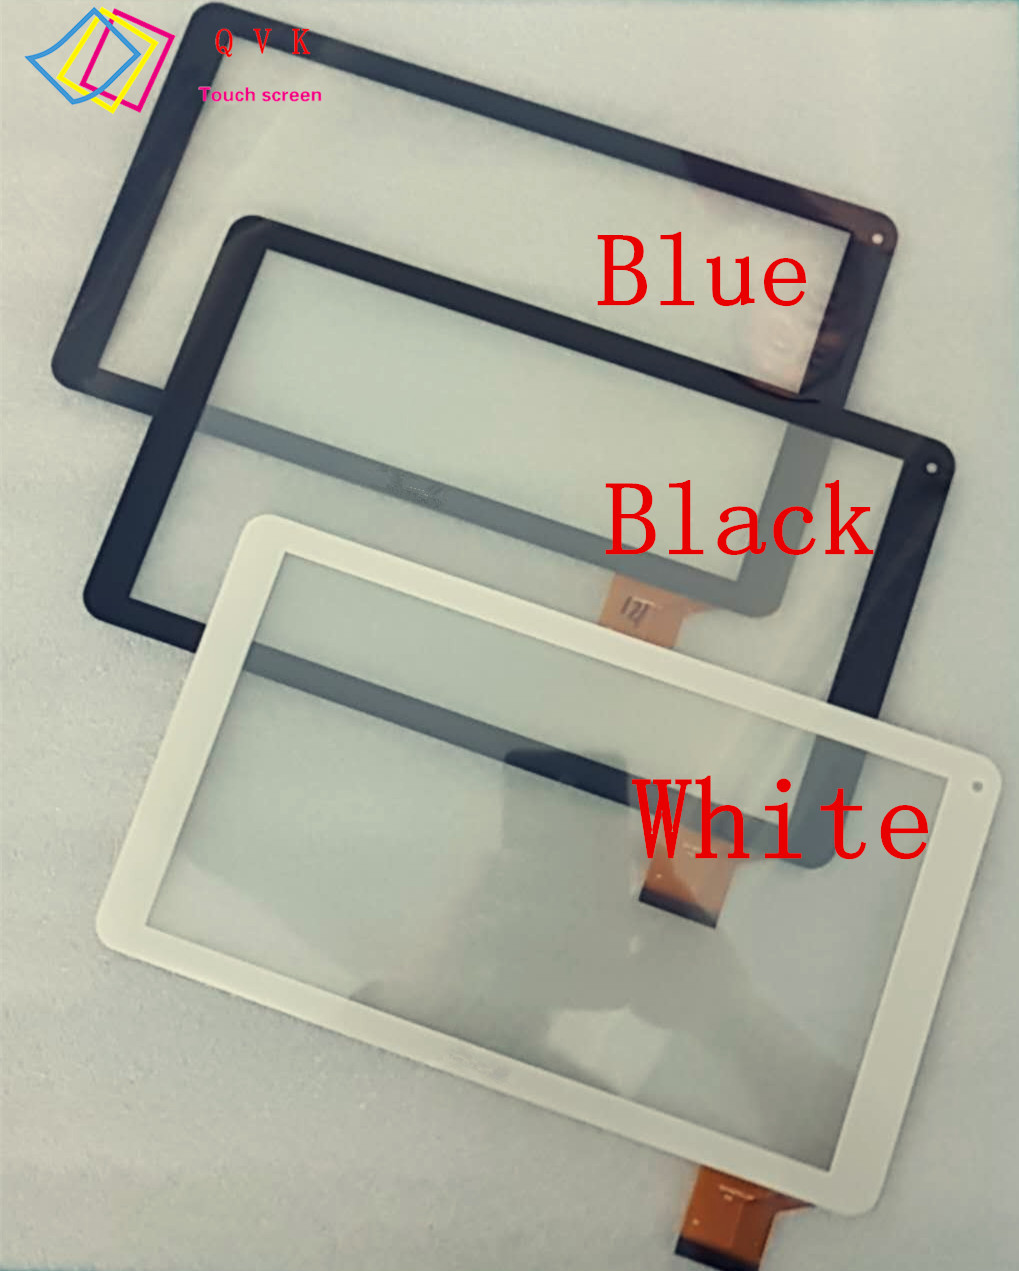 New 10.1 inch For Archos 101c Copper CN100FPC-V1 touch Screen Panel digitizer CN100FPCV1 Glass Sensor Replacement Free Shipping a new for bq 1045g orion touch screen digitizer panel replacement glass sensor sq pg1033 fpc a1 dj yj313fpc v1 fhx